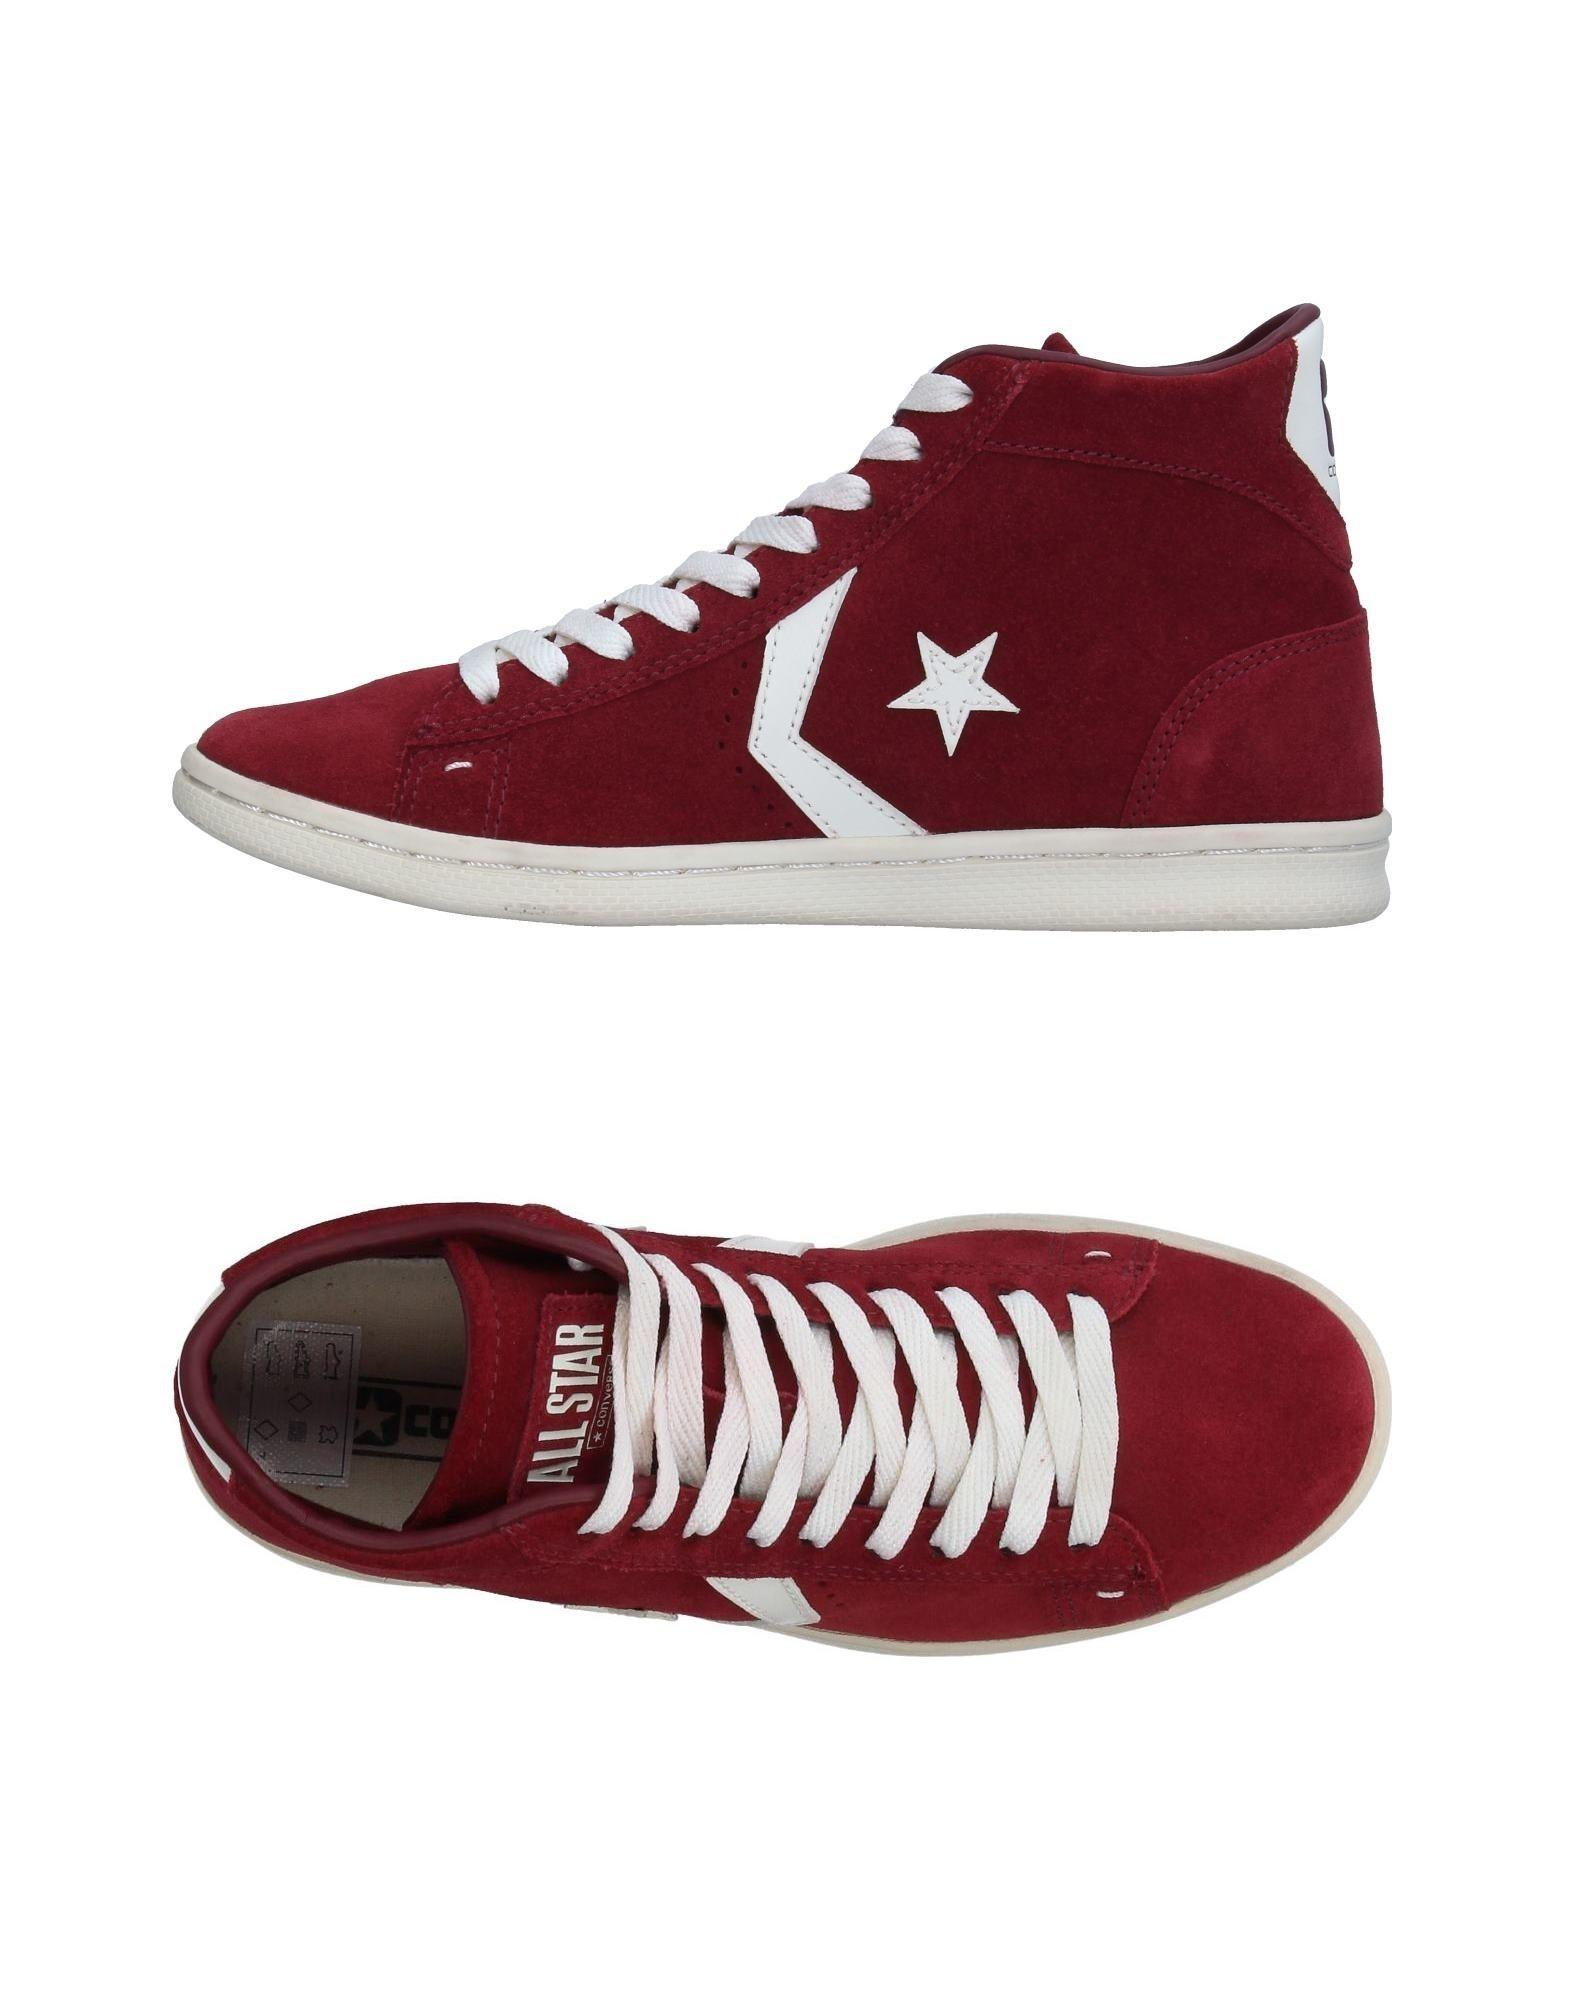 Converse High-tops & Sneakers in Red for Men - Save 44%   Lyst